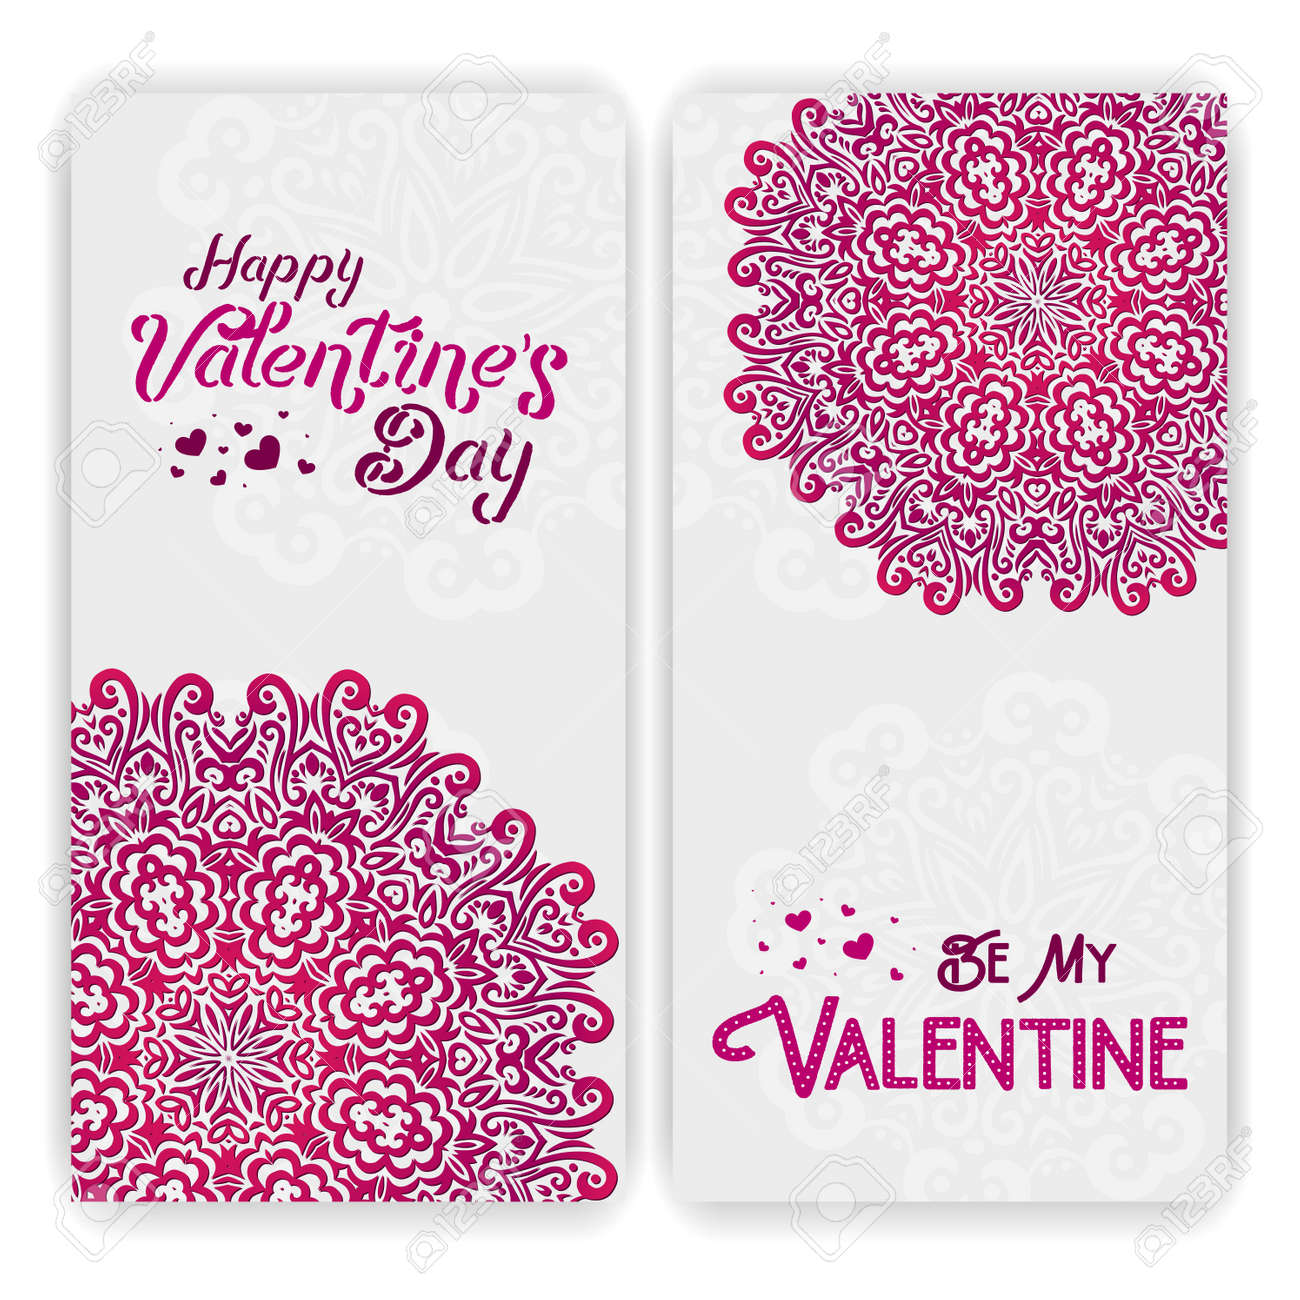 Happy Valentines Day Greeting Card Template Lacy Romantic Indian